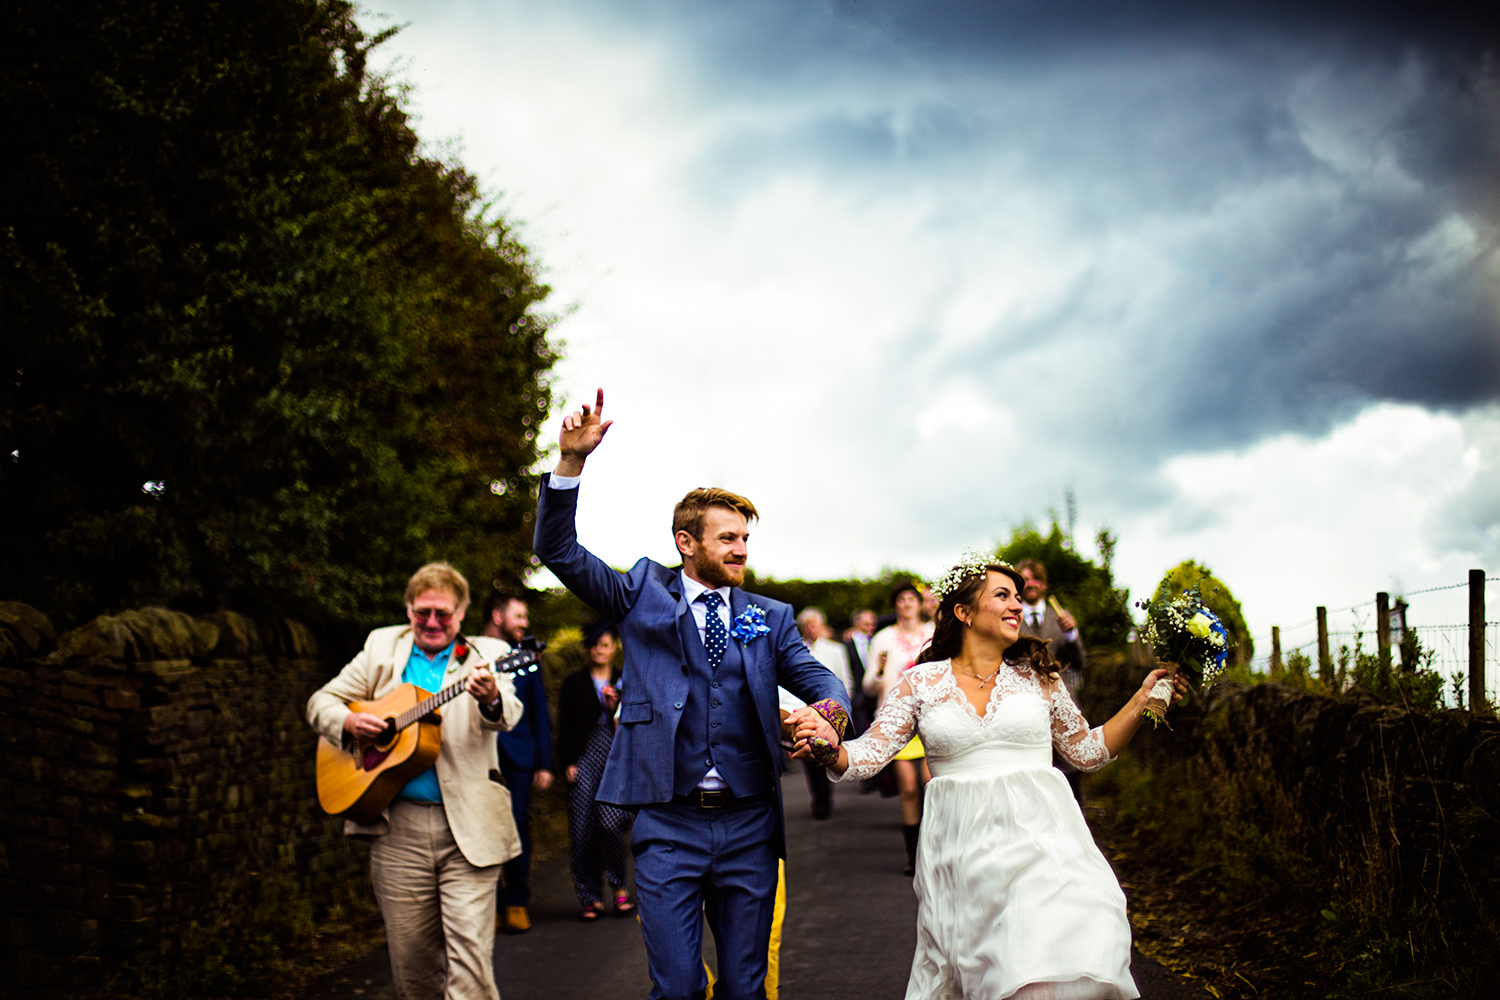 sansom wedding photography best of 2014 (1)